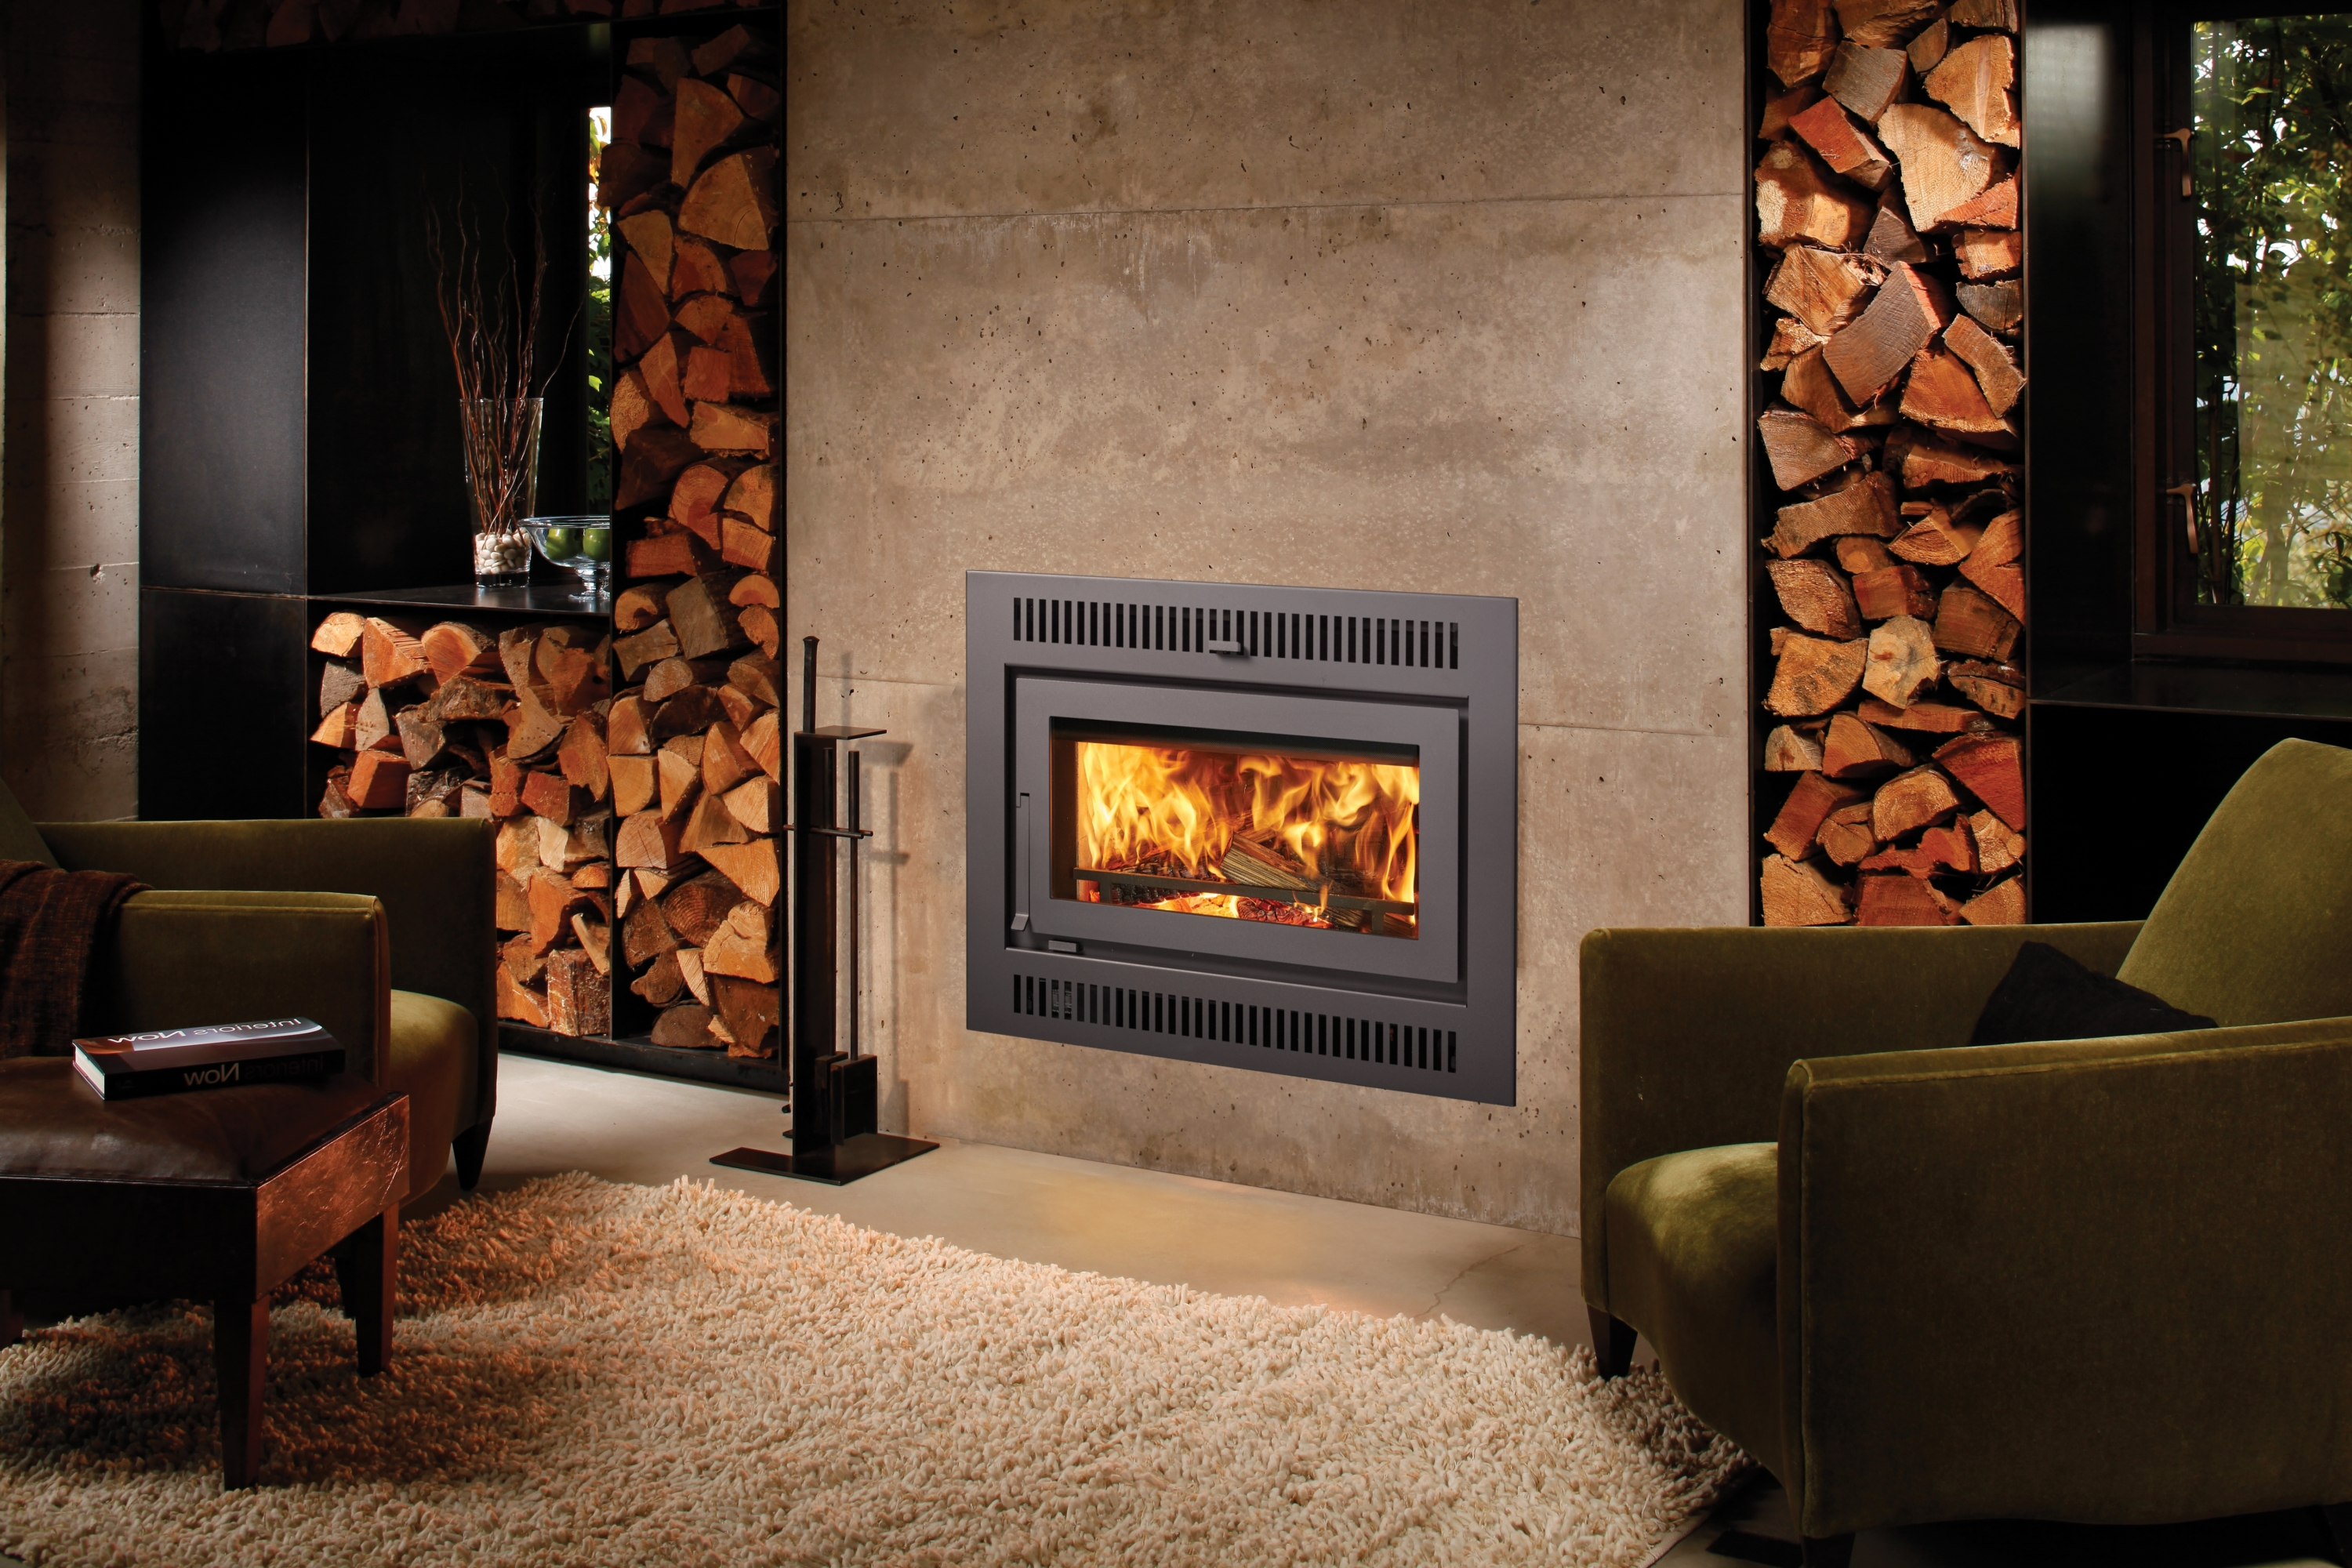 Another Image of the modern modern 42 Apex woodburning fireplace featuring a traditional face.